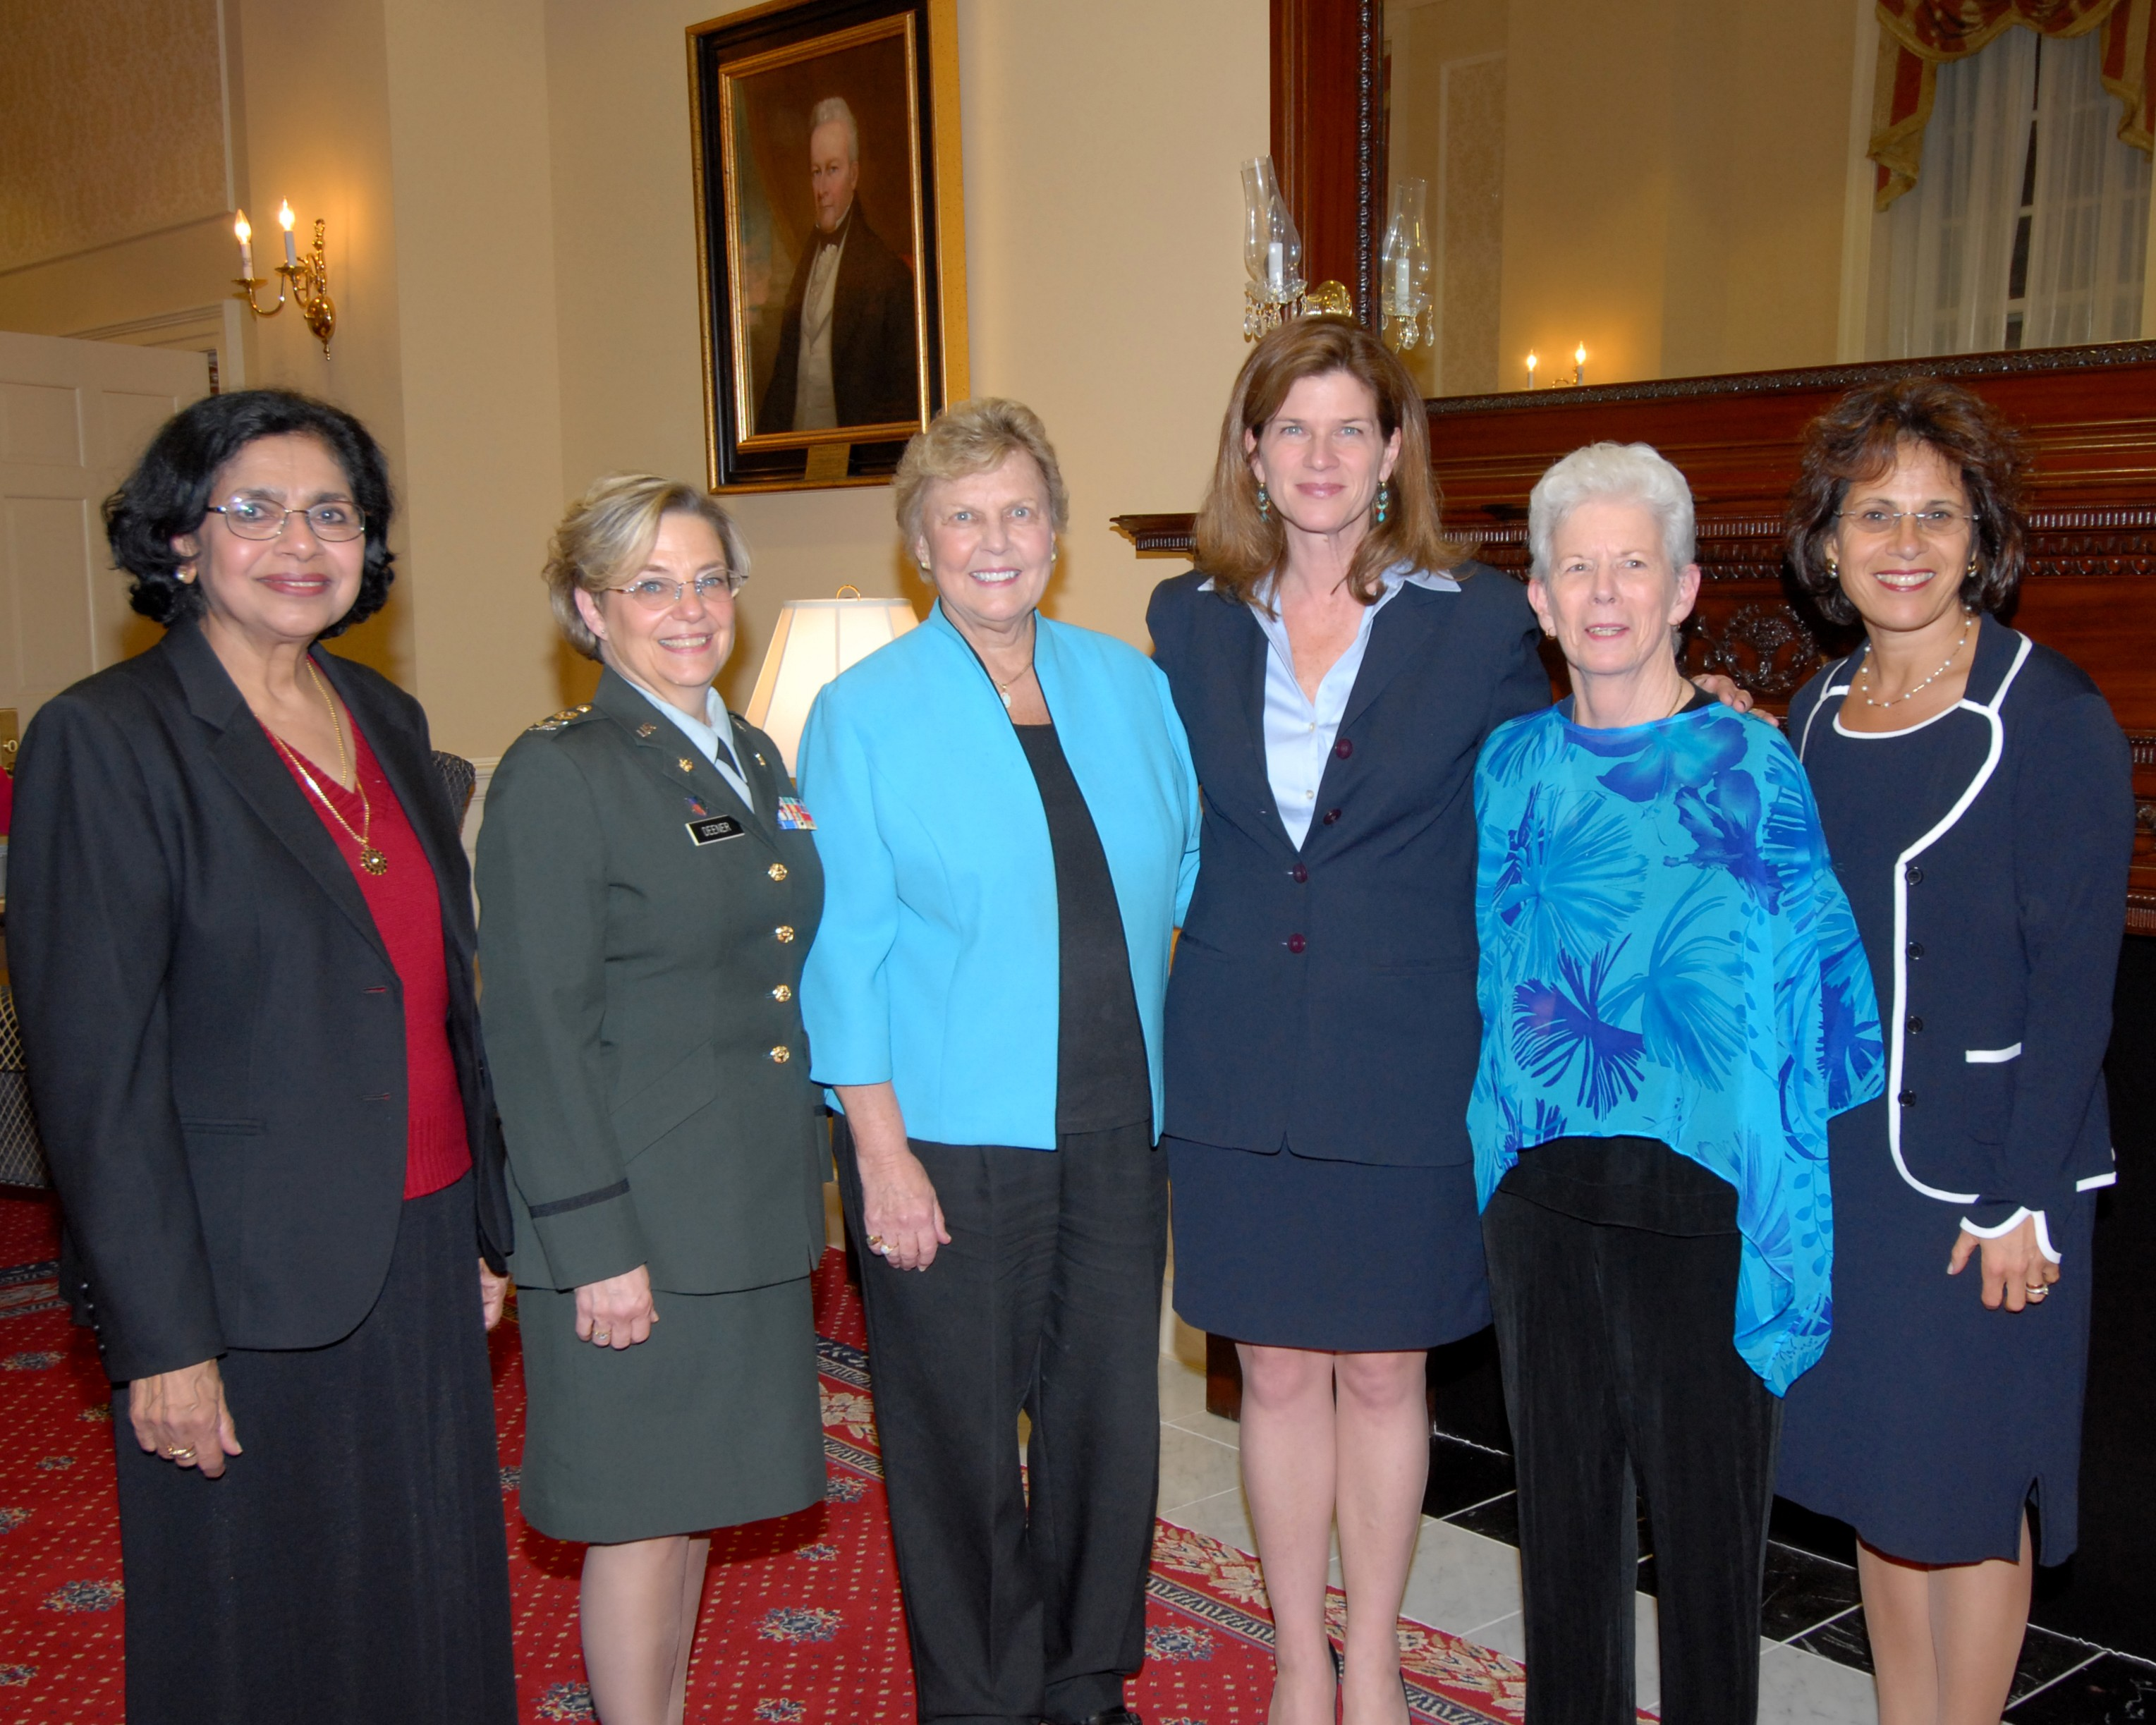 photo, 2007 Maryland Women's Hall of Fame inductees